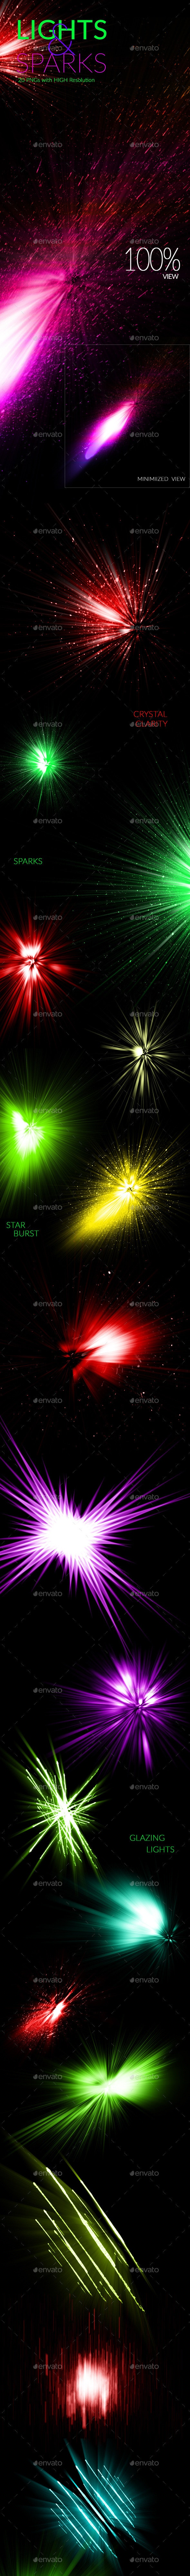 20 Lights & Sparks with Light Effects - Flourishes / Swirls Decorative